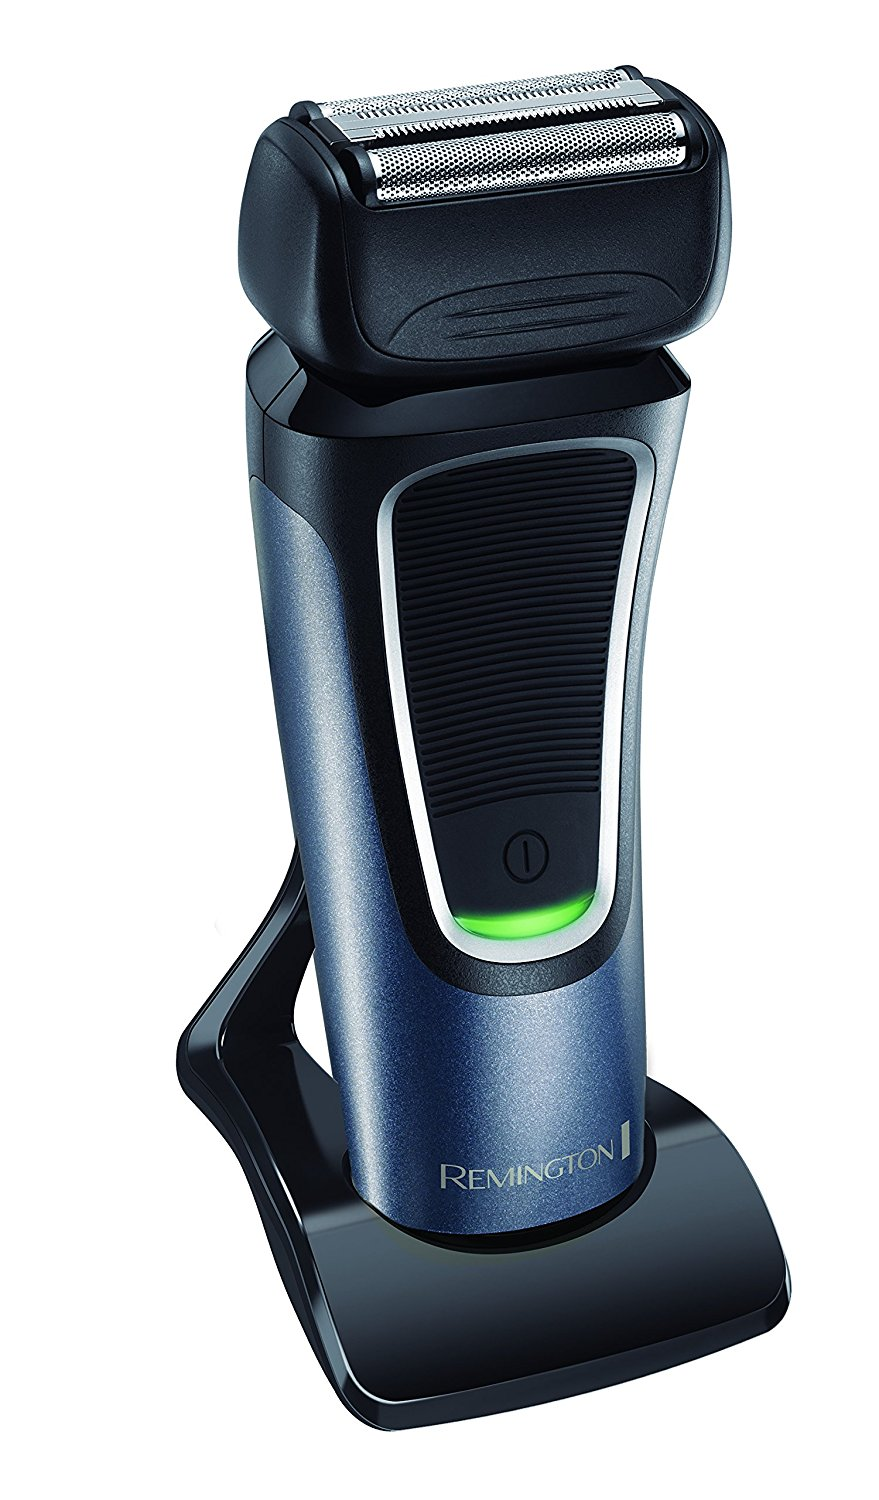 REMINGTON COMFORT SERIES PRO FOIL SHAVER | PF7500